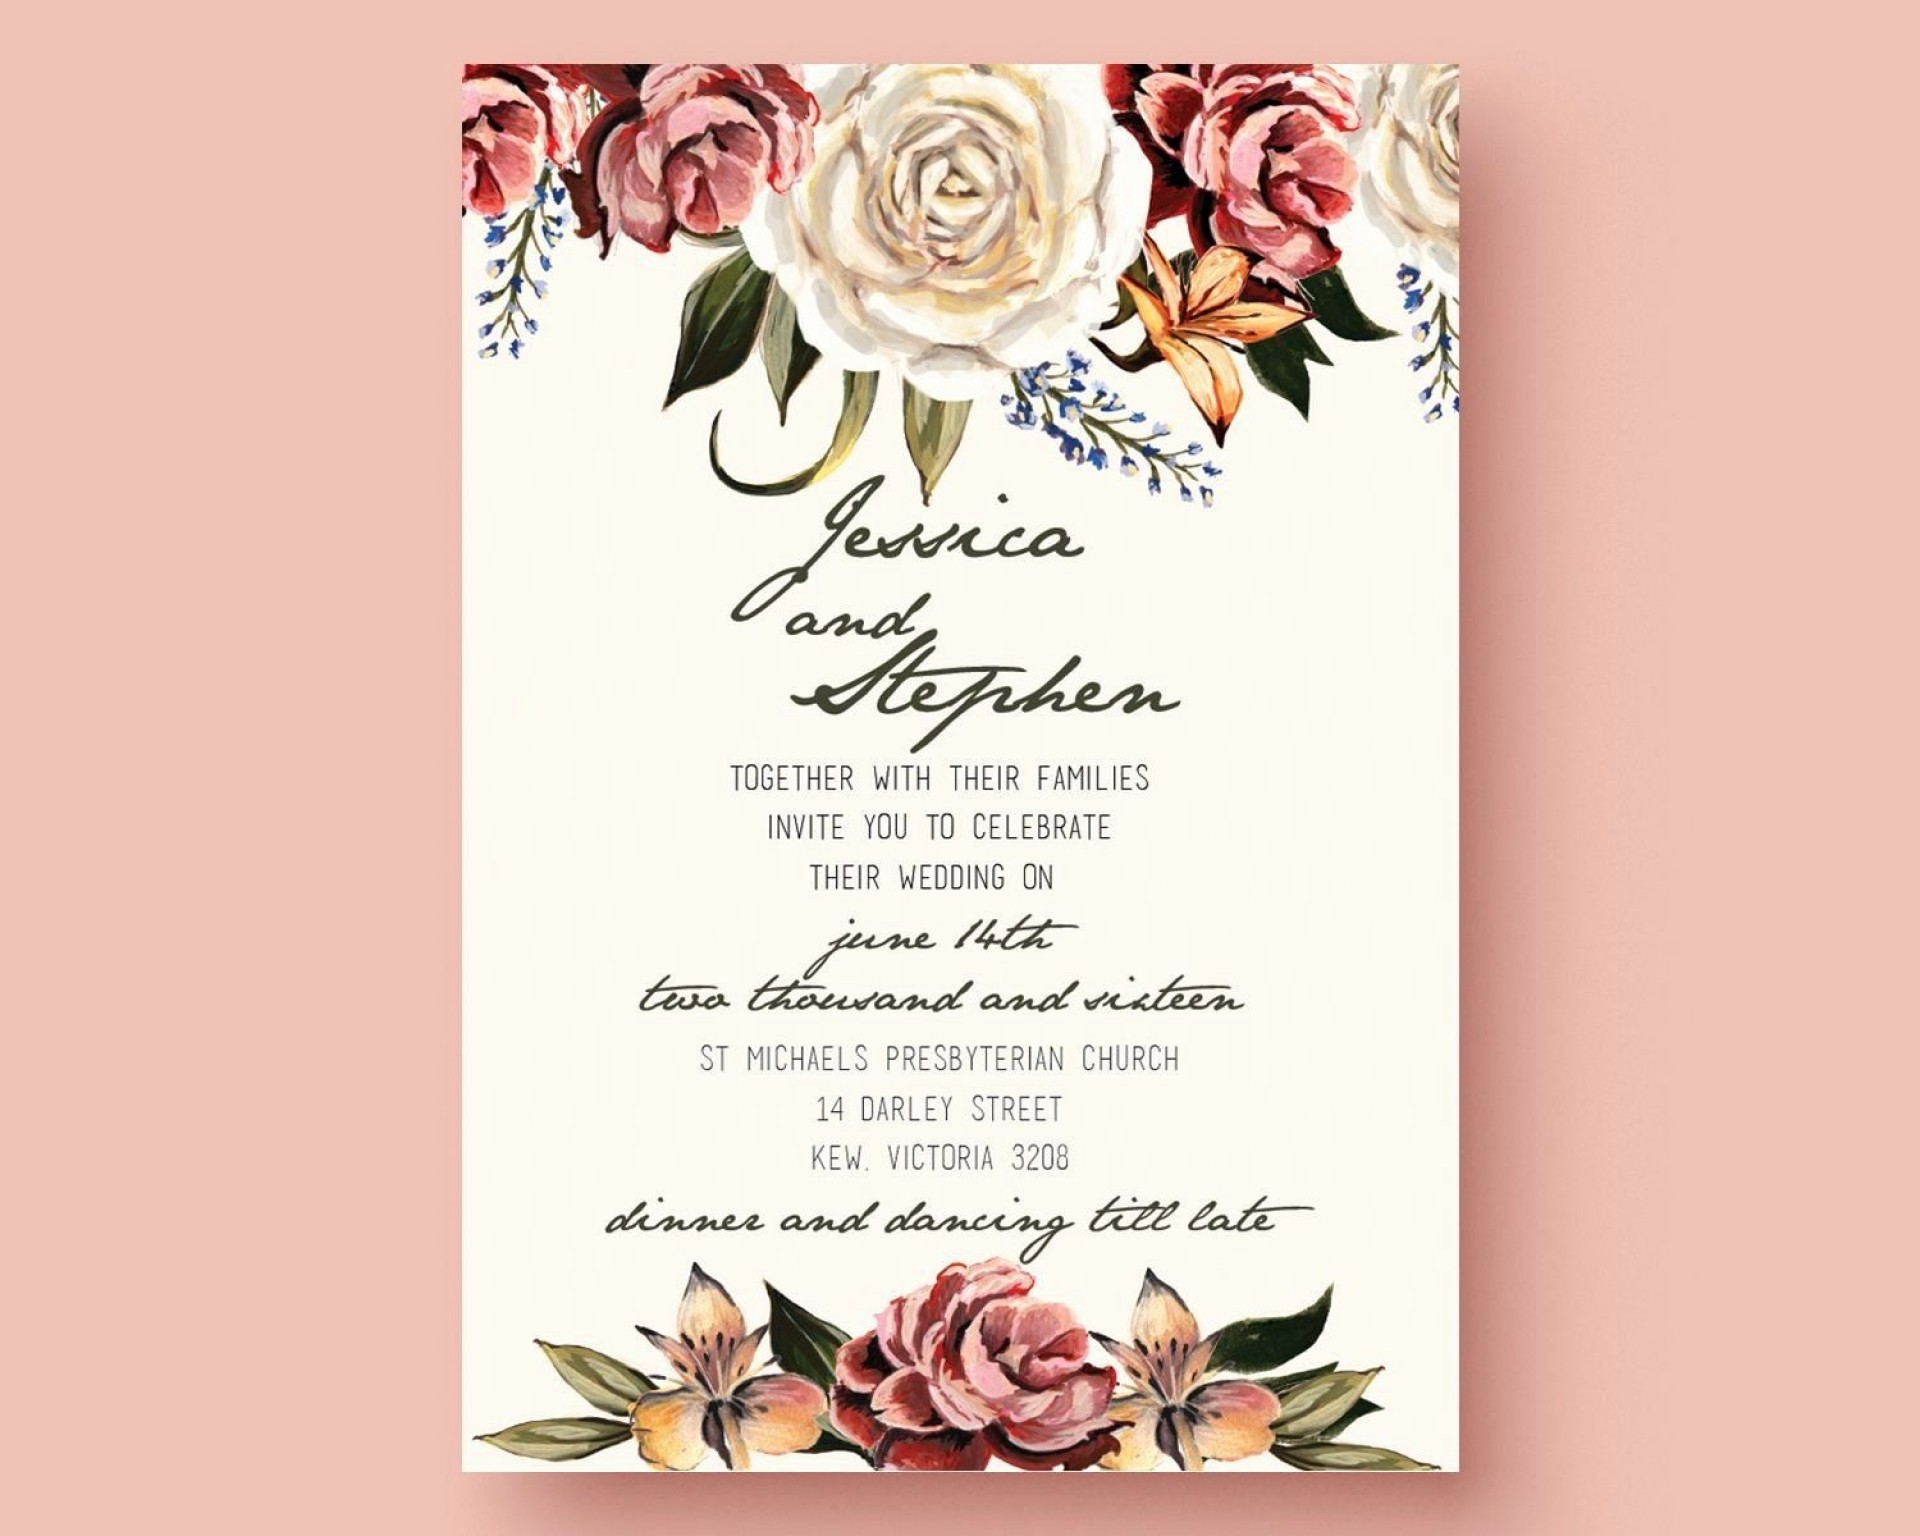 005 Beautiful Wedding Invitation Template Free Example  Card Psd For Word Muslim 20071920